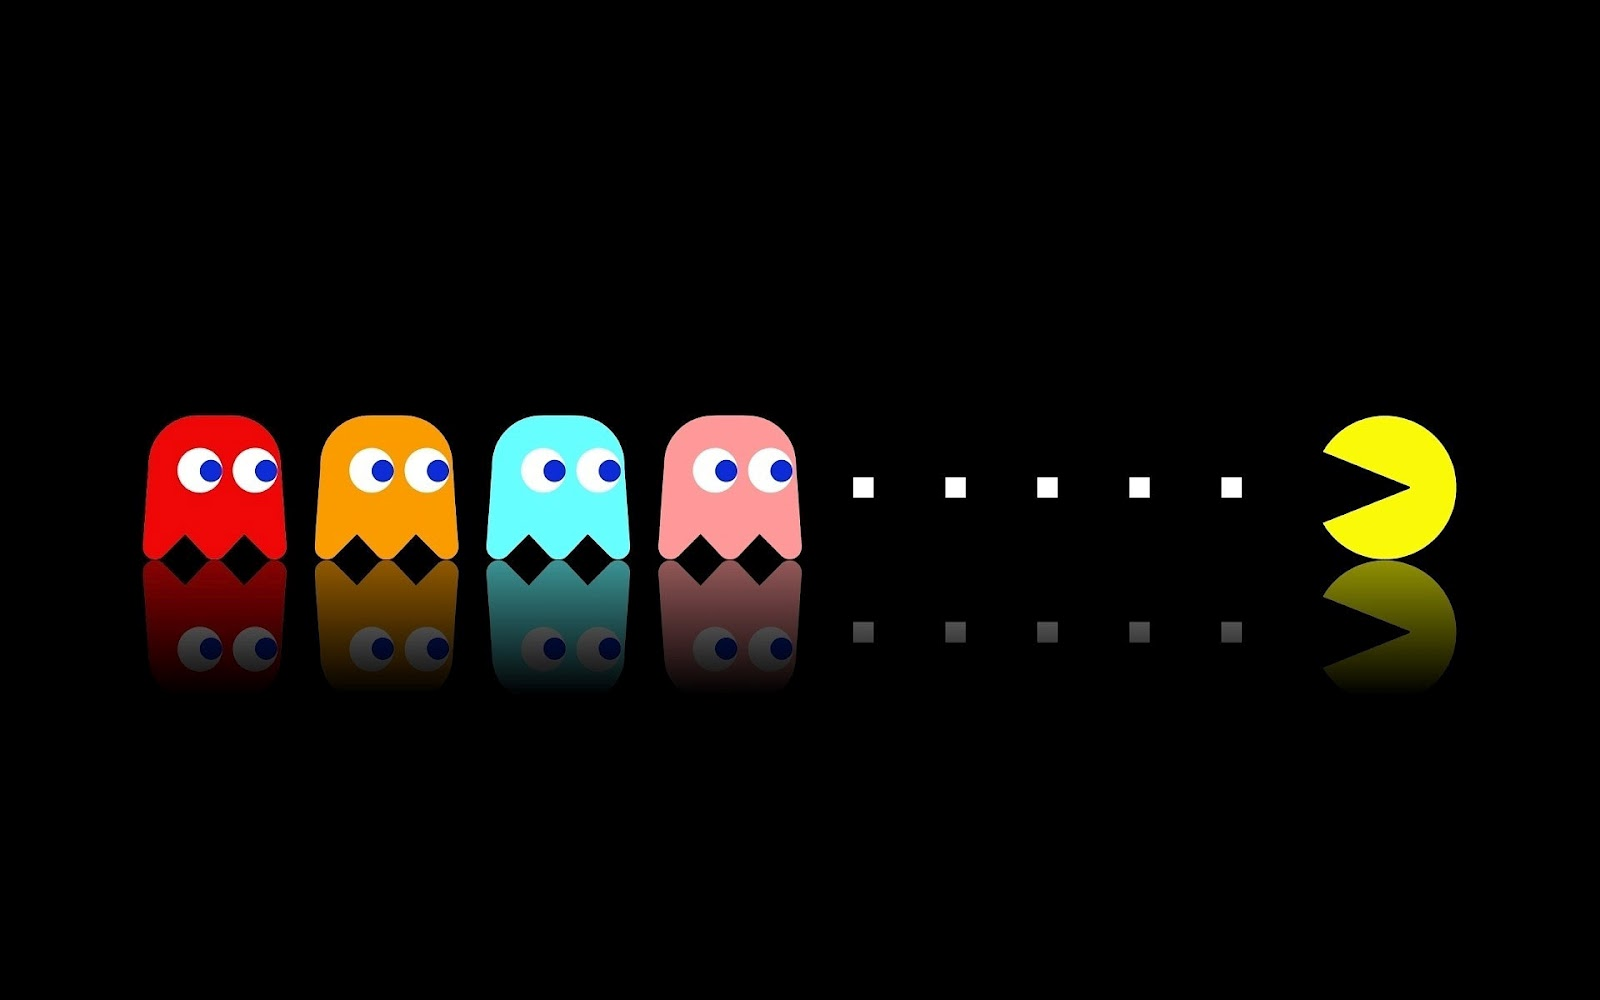 Animated Pac Man Wallpaper   WallpaperSafari